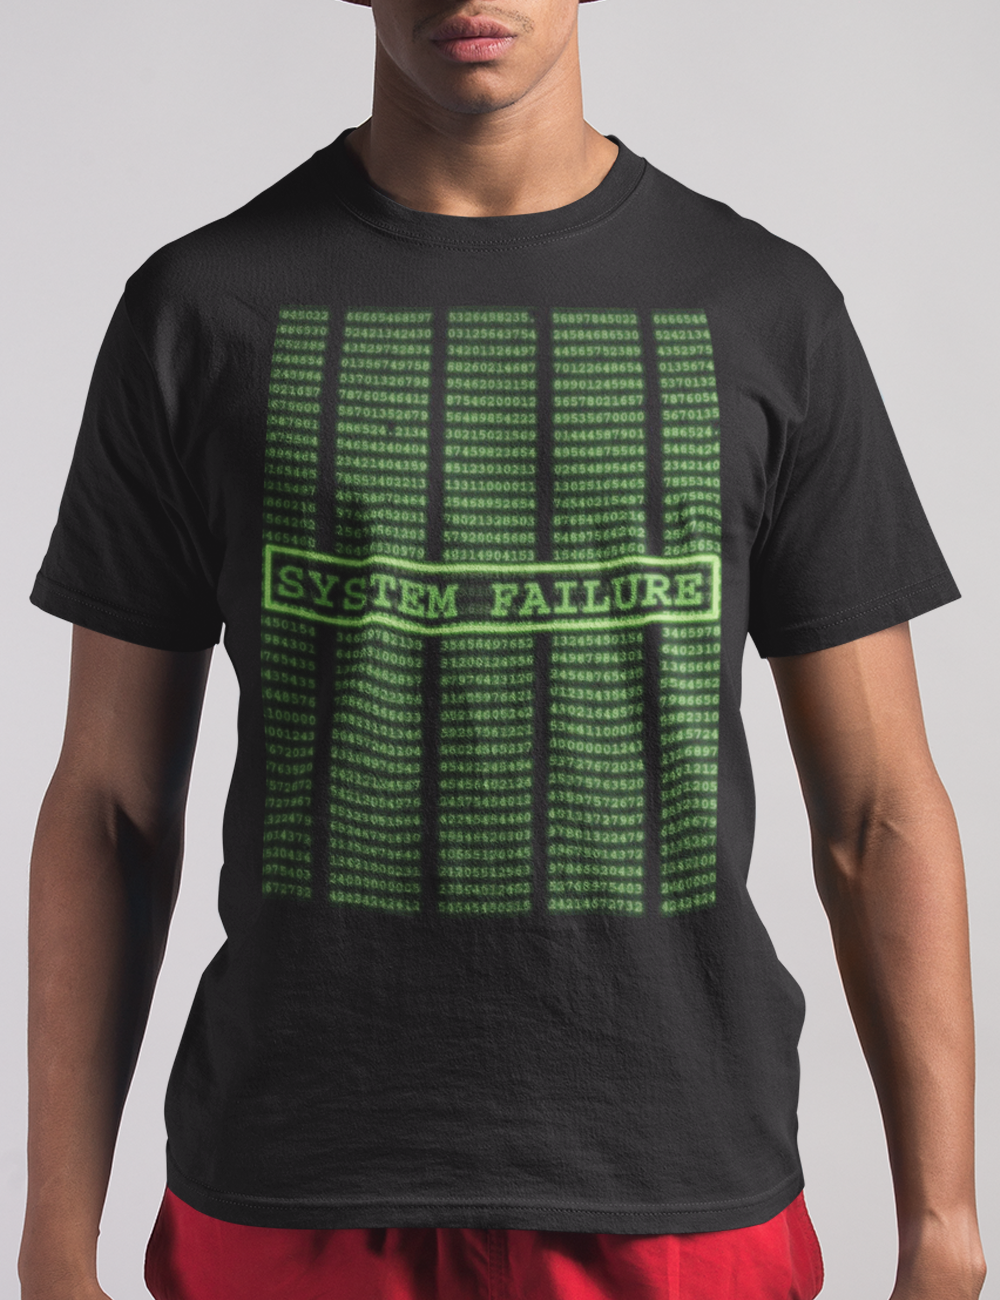 System Failure | T-Shirt